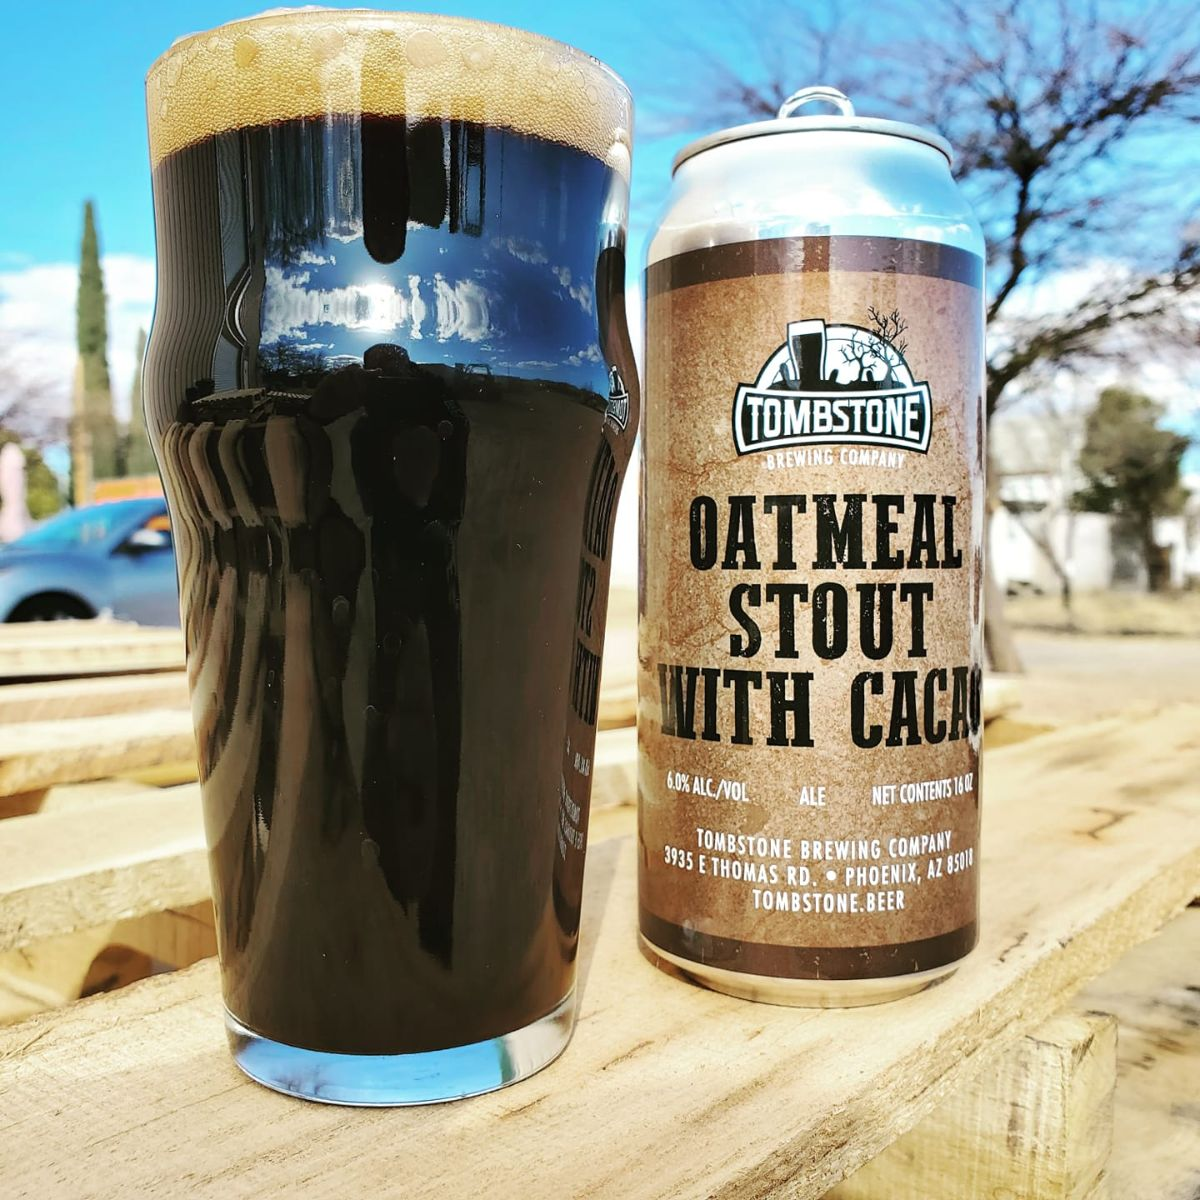 tombstone beer oatmeal stout with cacao in a pint glass and can outside